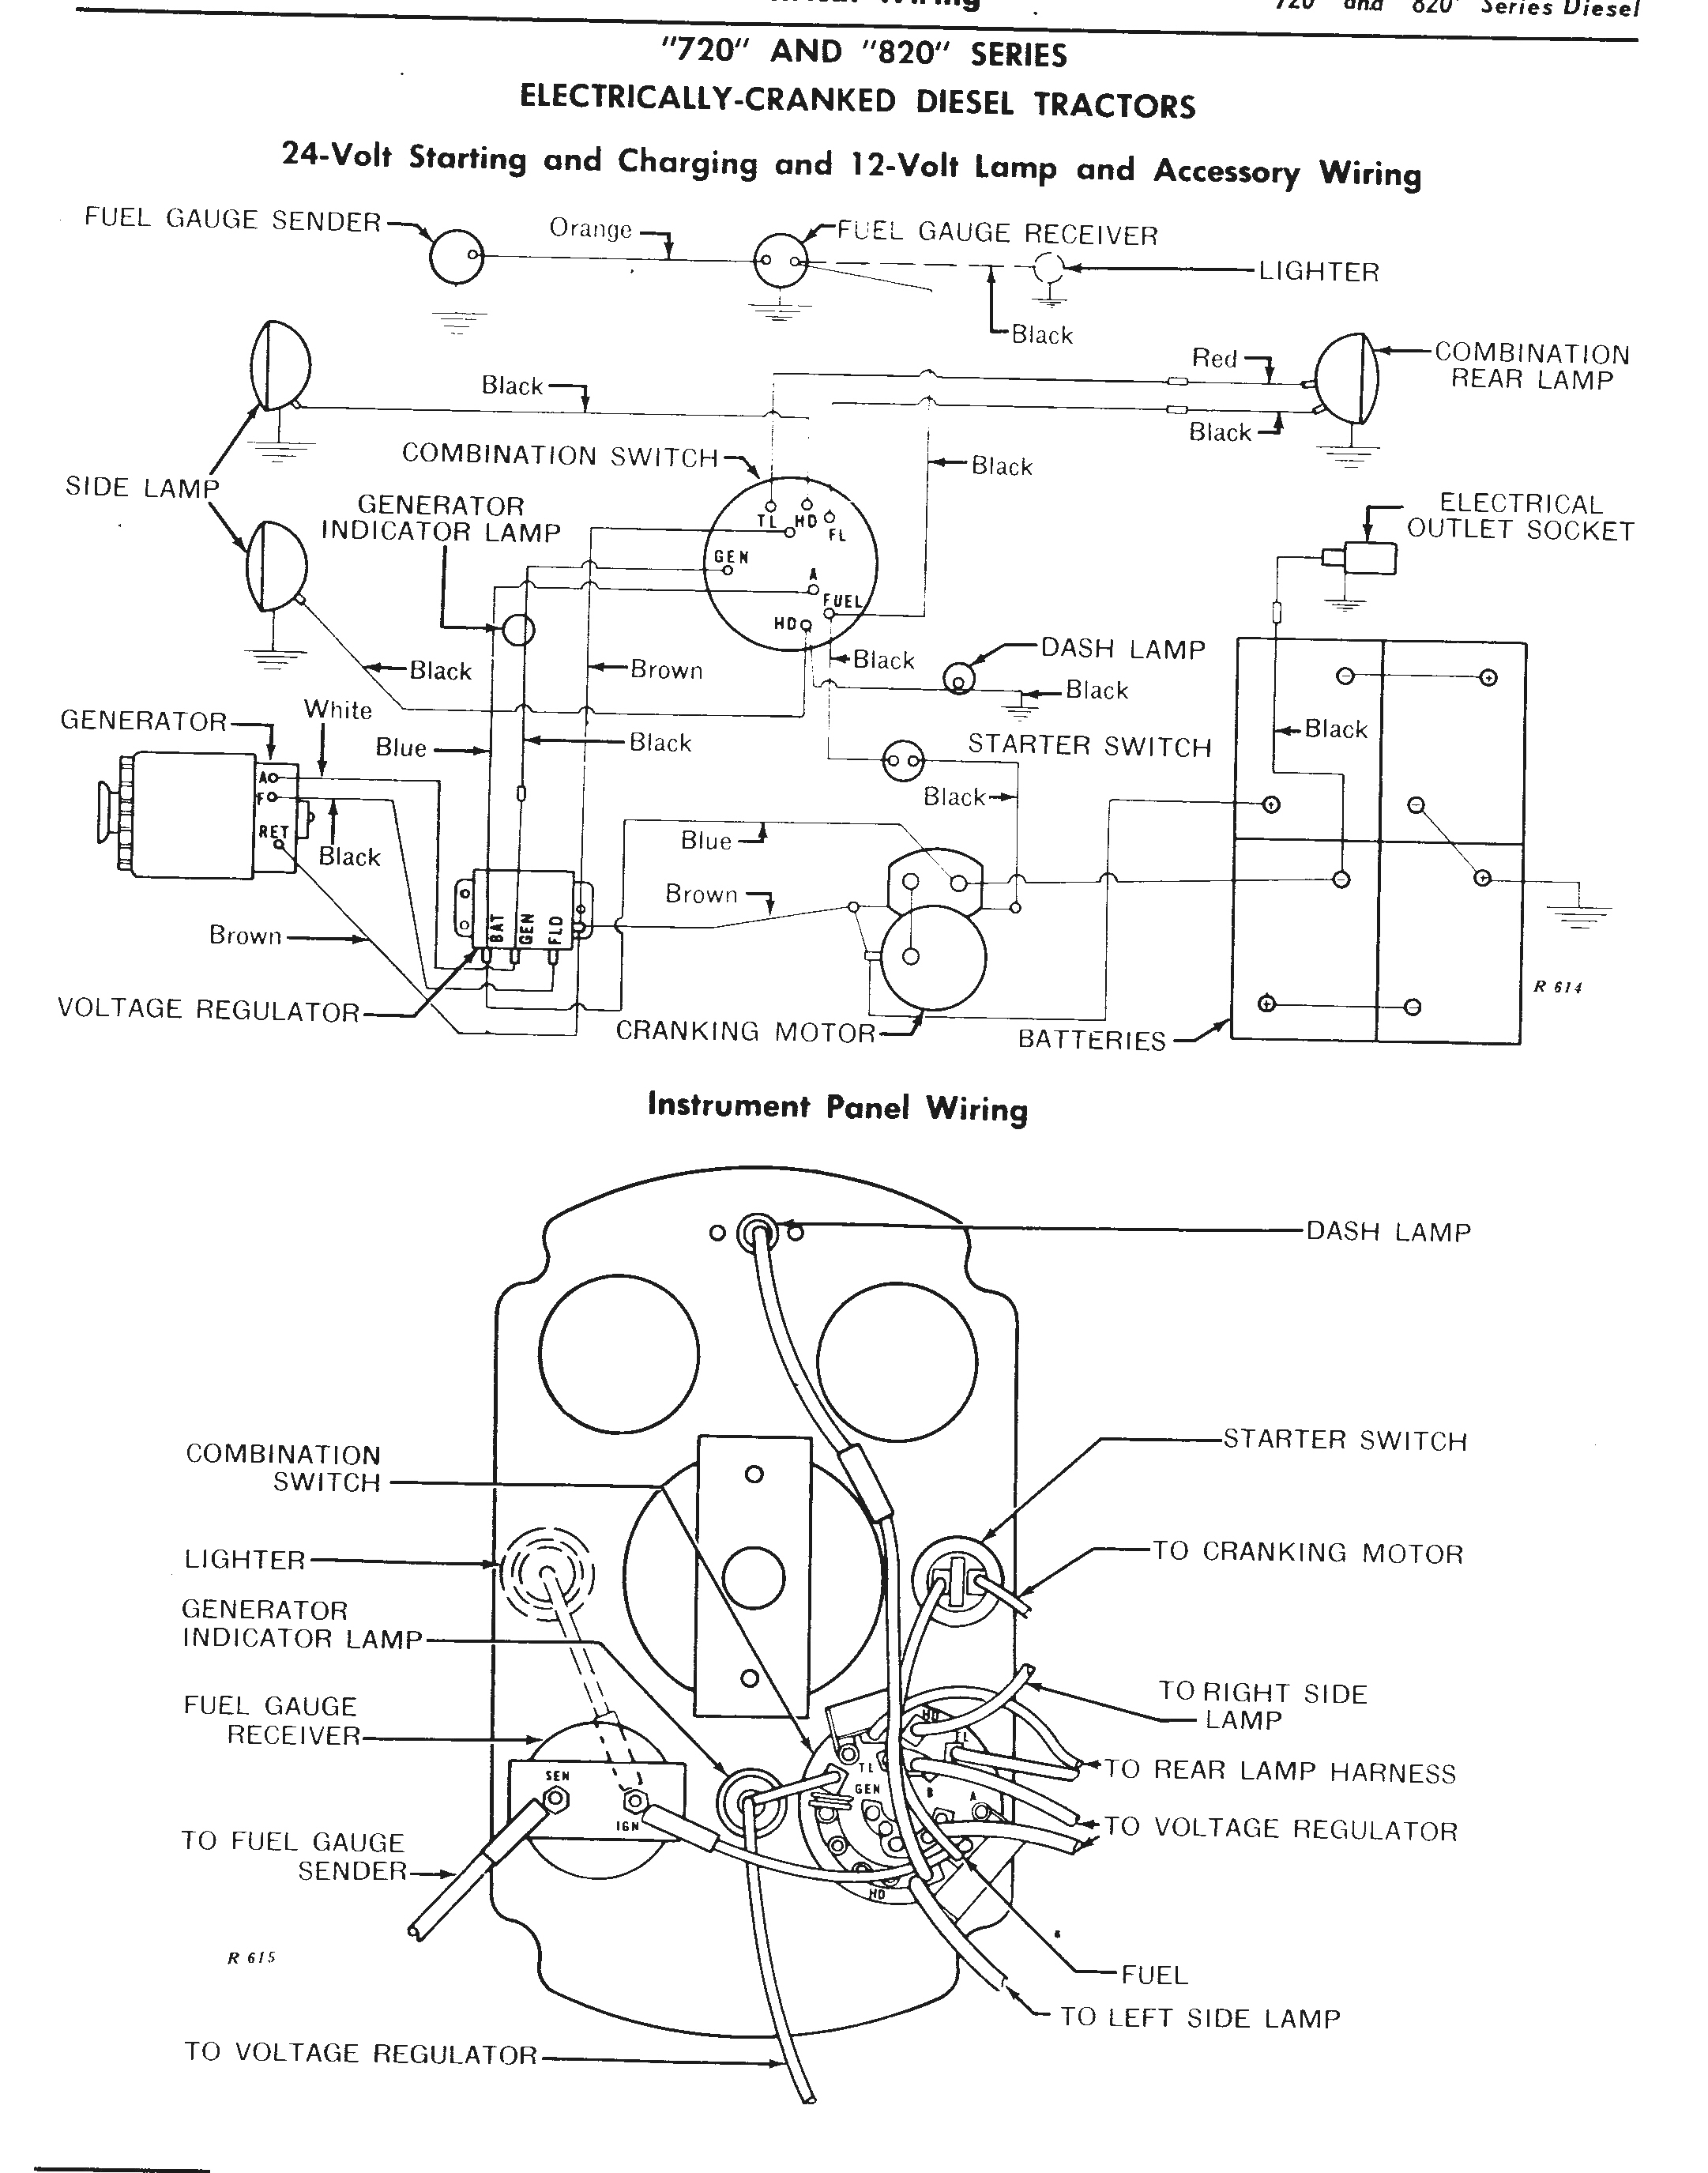 deere_24v_wiring the john deere 24 volt electrical system explained john deere 4010 wiring diagram at bayanpartner.co